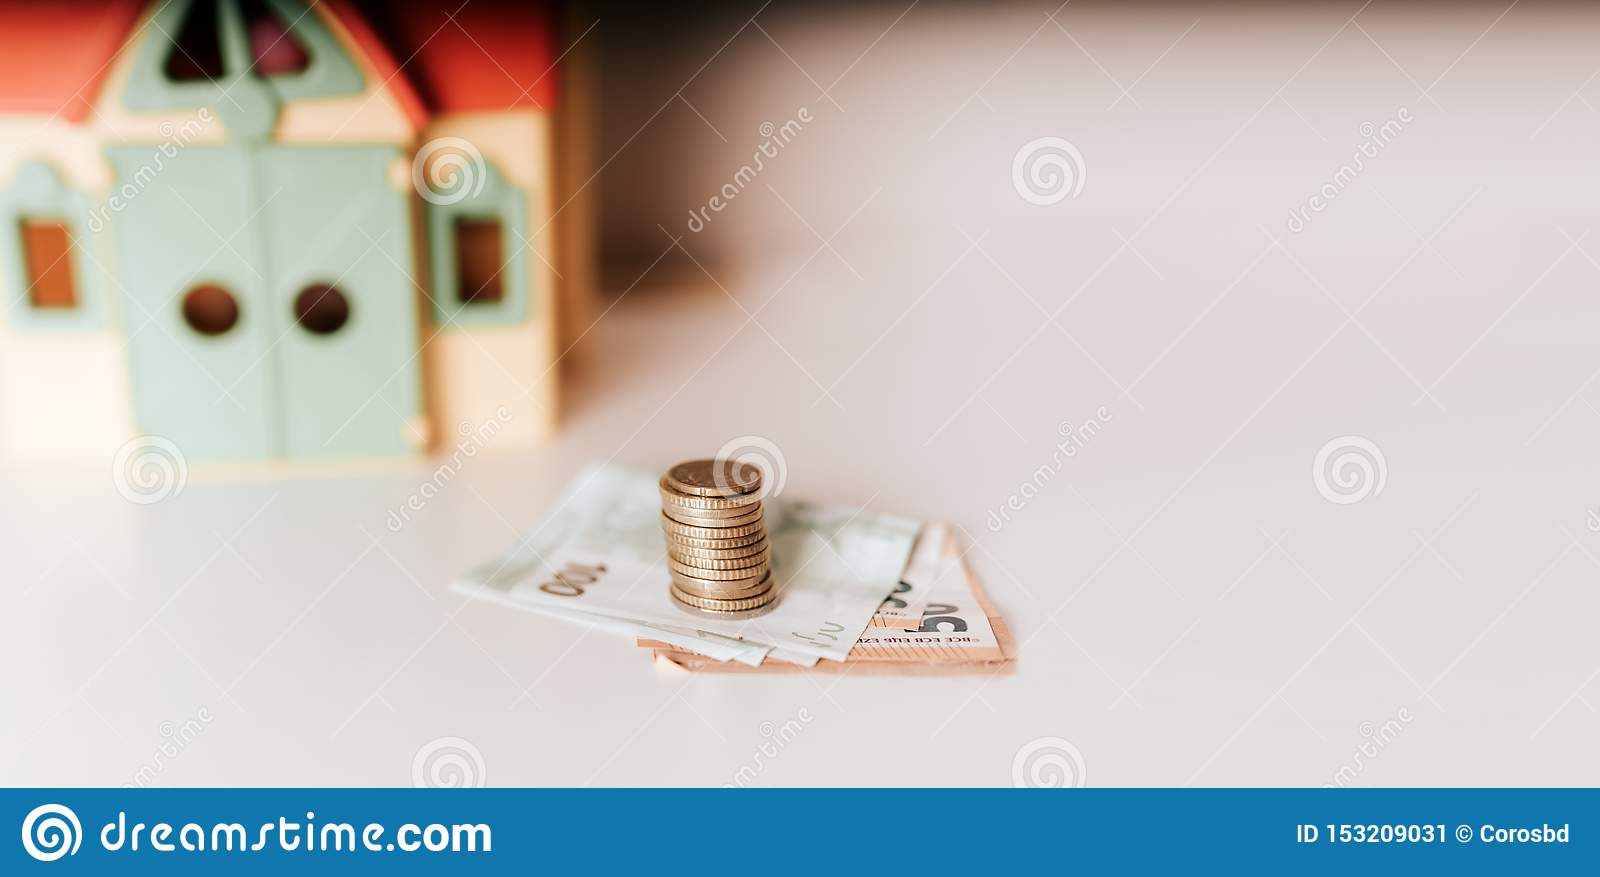 House mortgage loan buy sell price real estate investment money stock photo